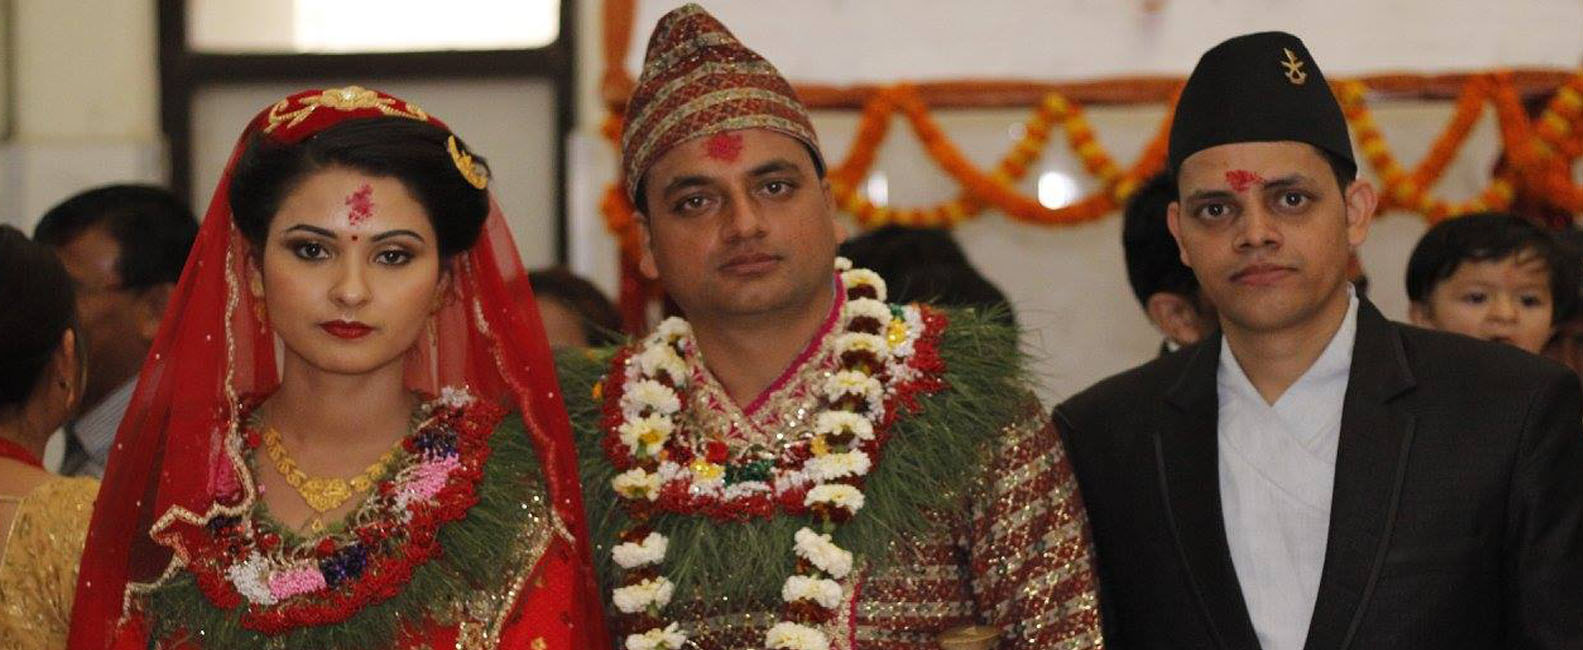 Traditional Hindu Wedding in Nepal   Marriage in Nepal for